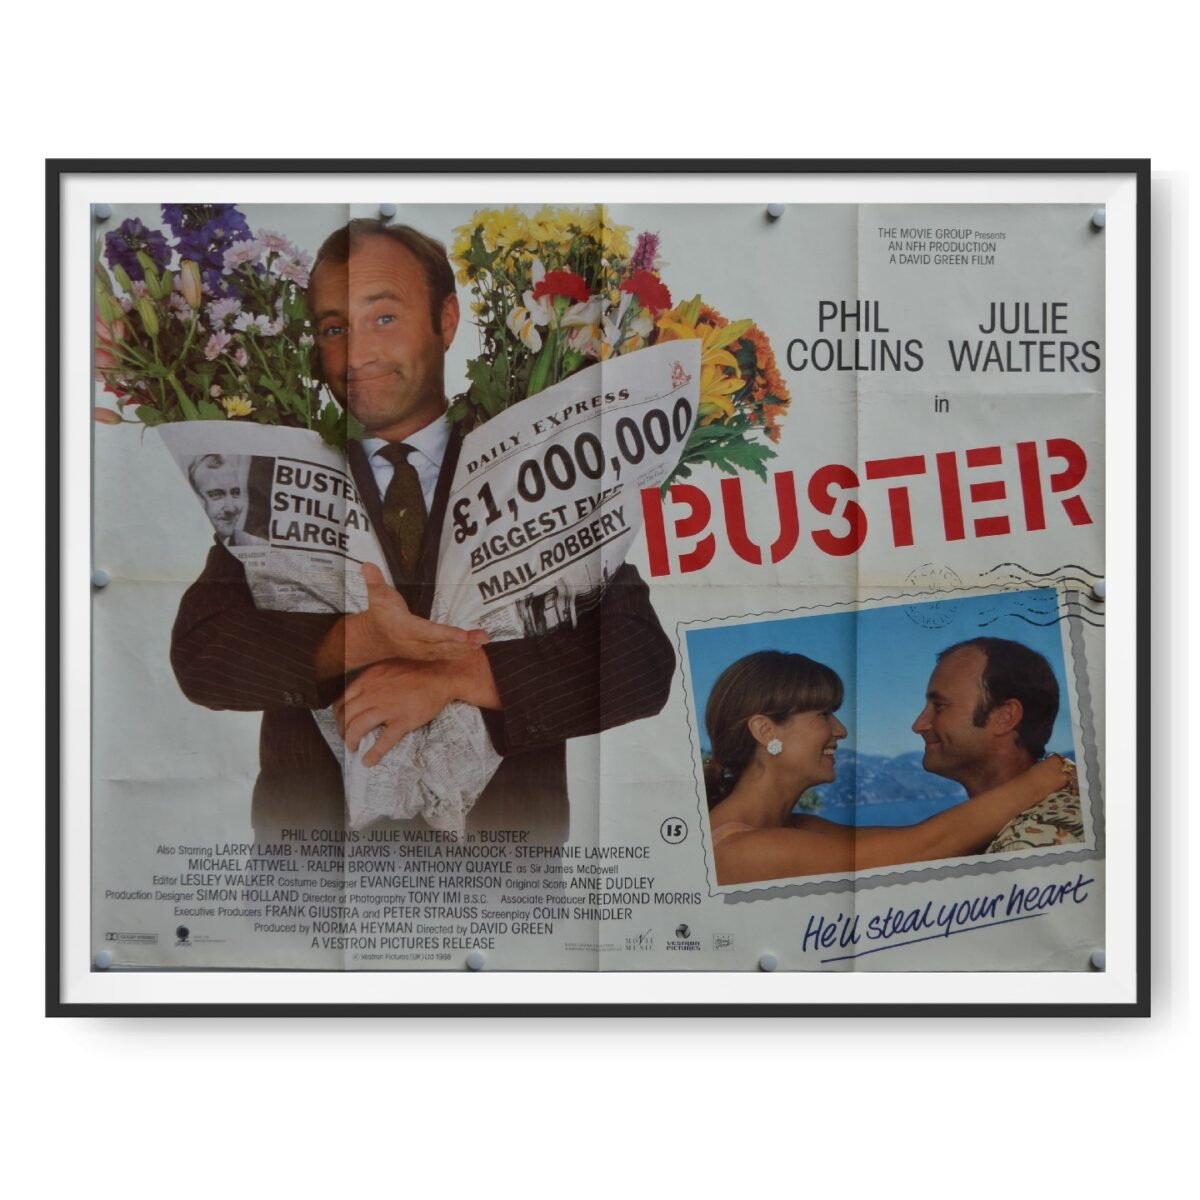 This is an original quad poster for the 1988 comedy Buster. The poster's images show florist turned train robber Buster (Phil Collins).